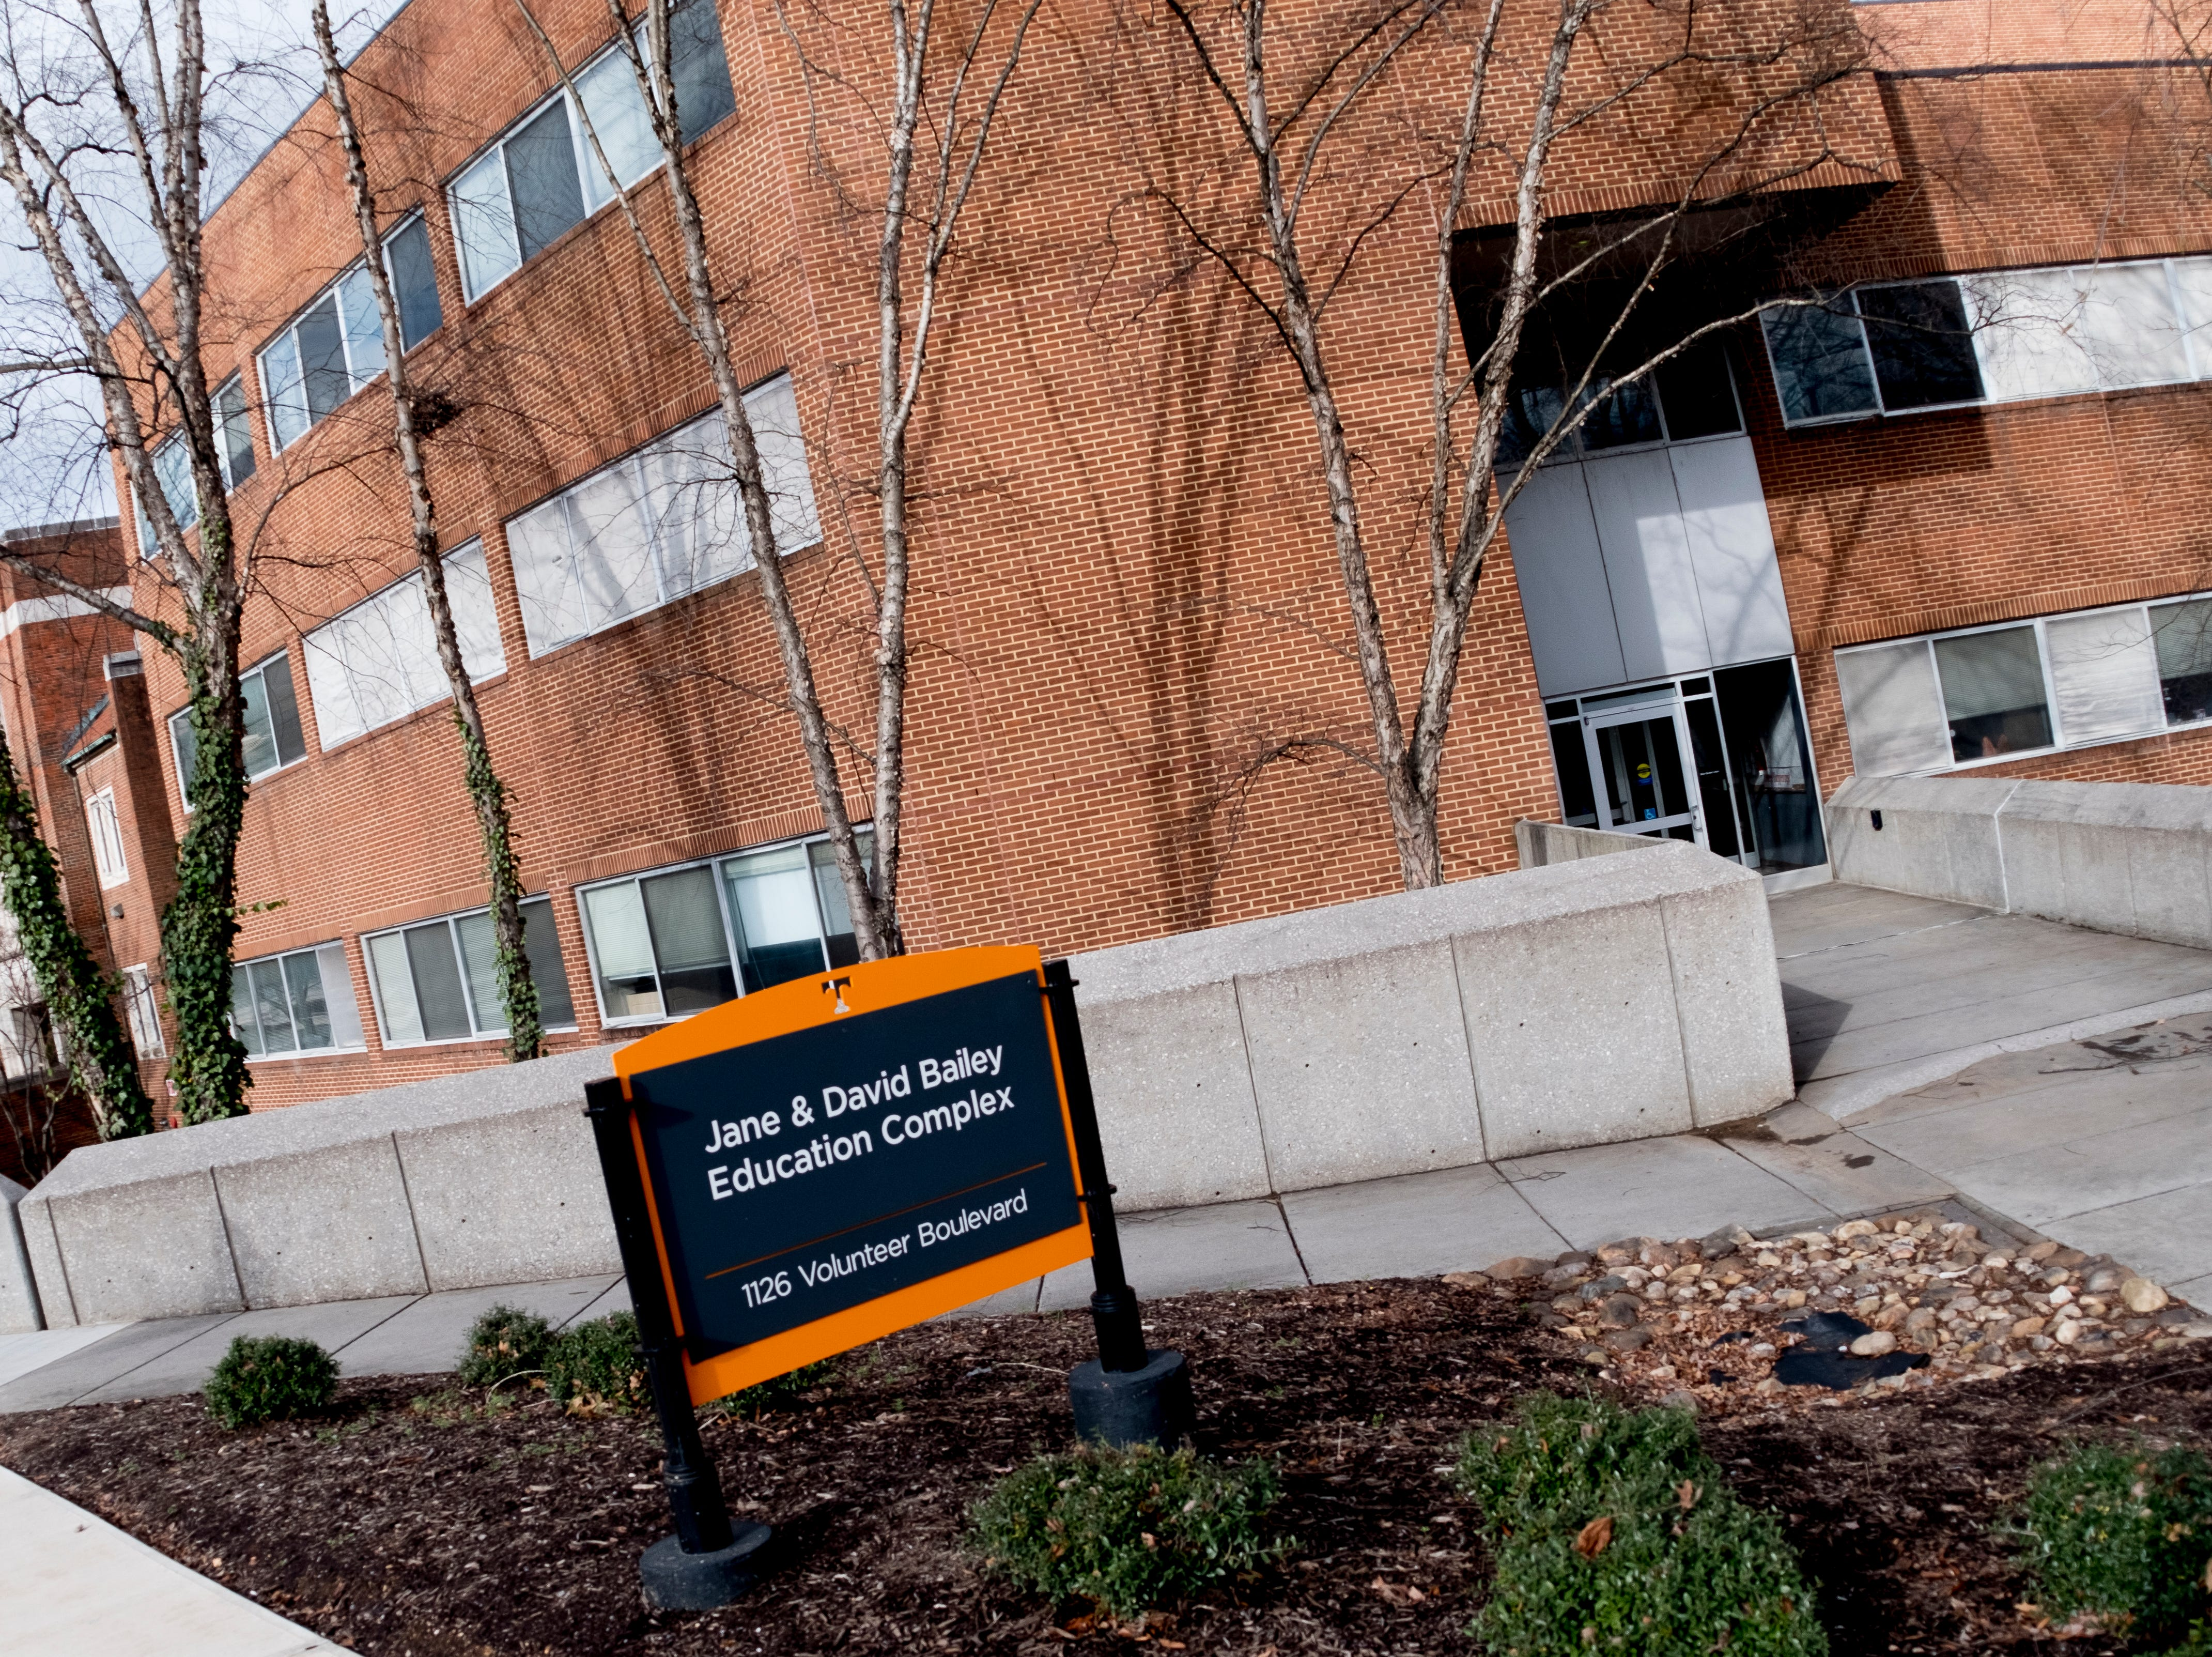 Jane & David Bailey Education Complex on the University of Tennessee campus in Knoxville, Tennessee on Tuesday, January 1, 2019.